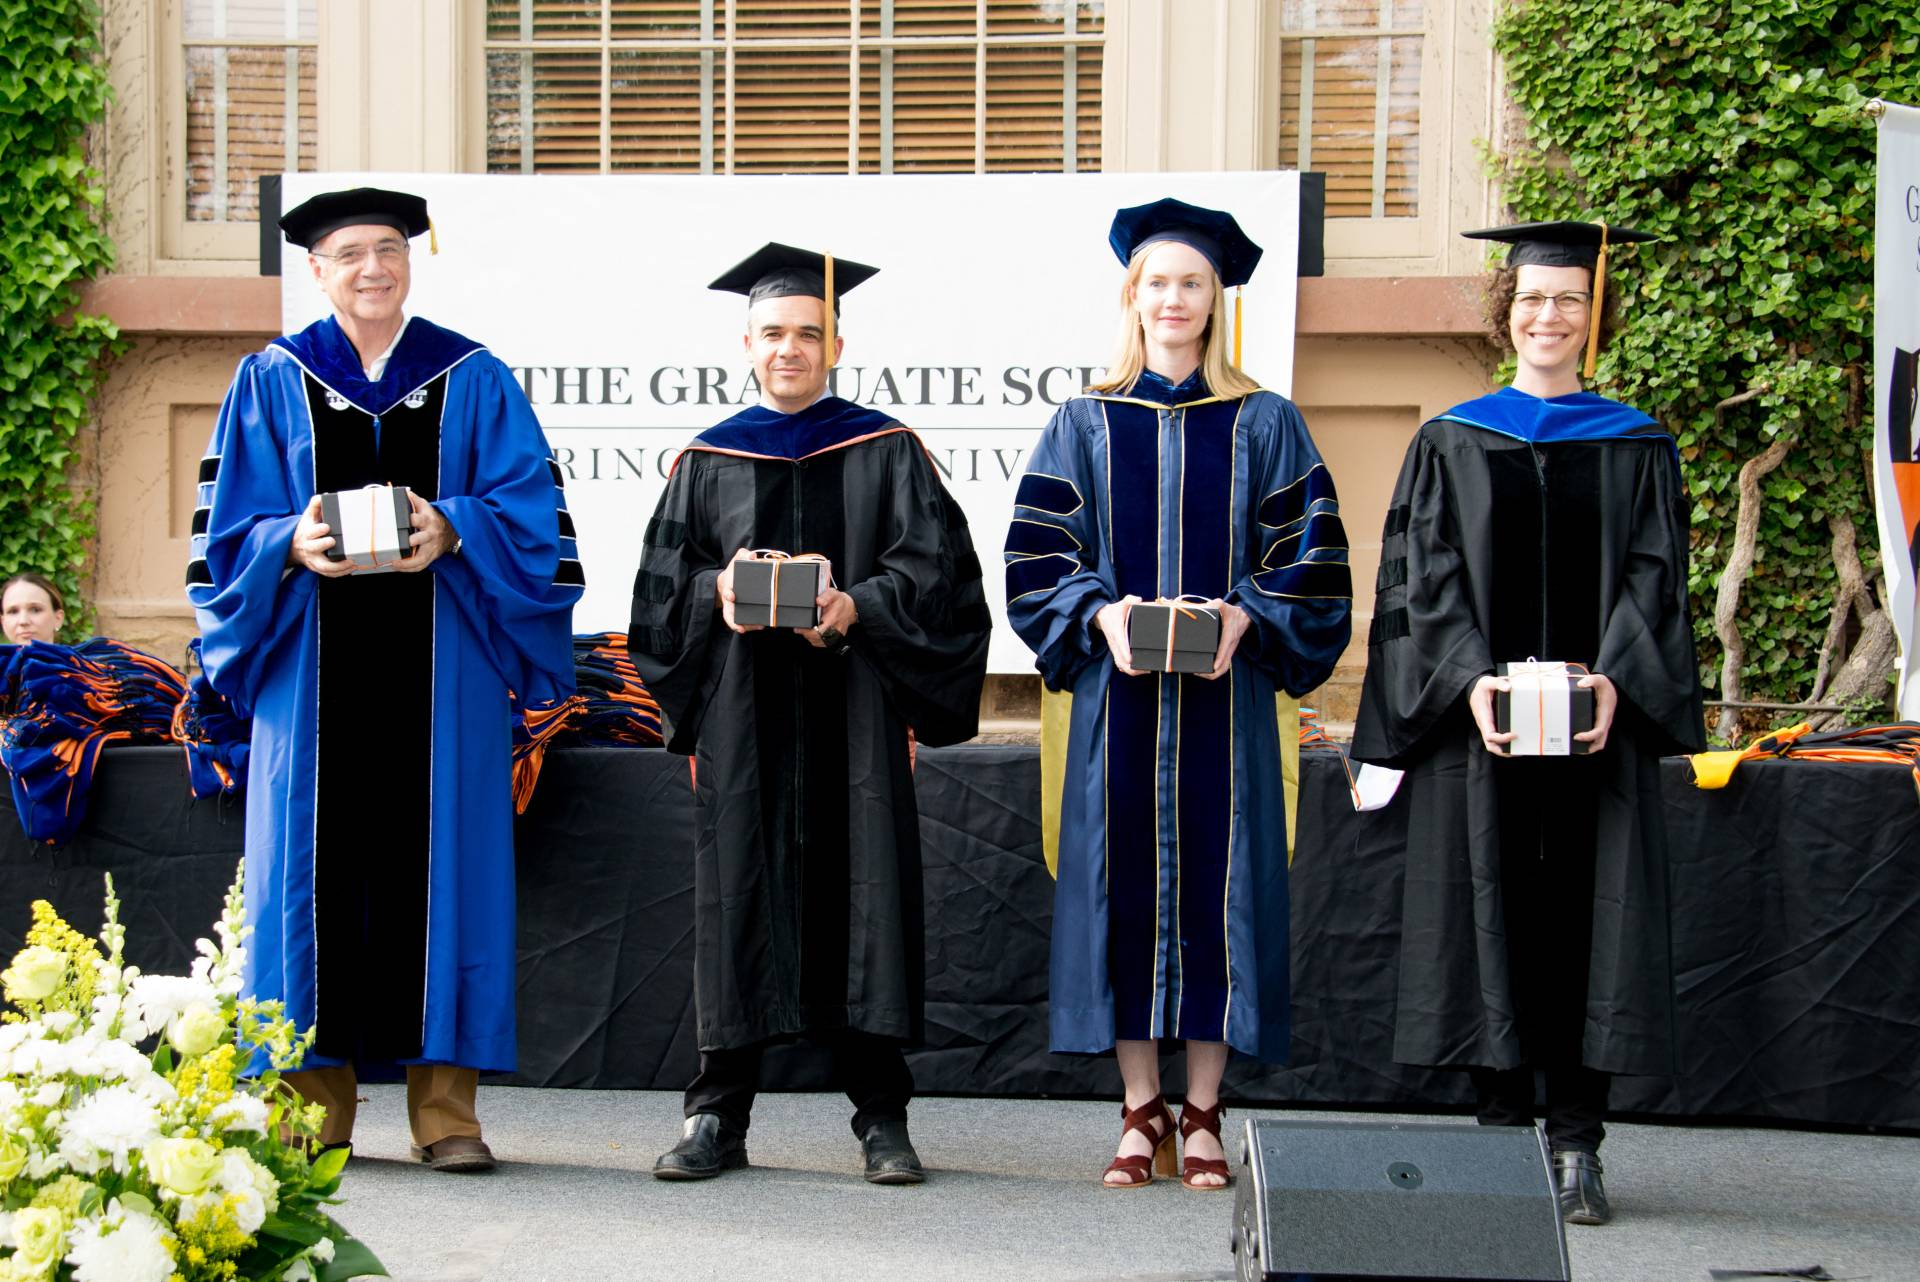 Graduate Mentoring Awards recipients at Hooding Ceremony stand together on stage